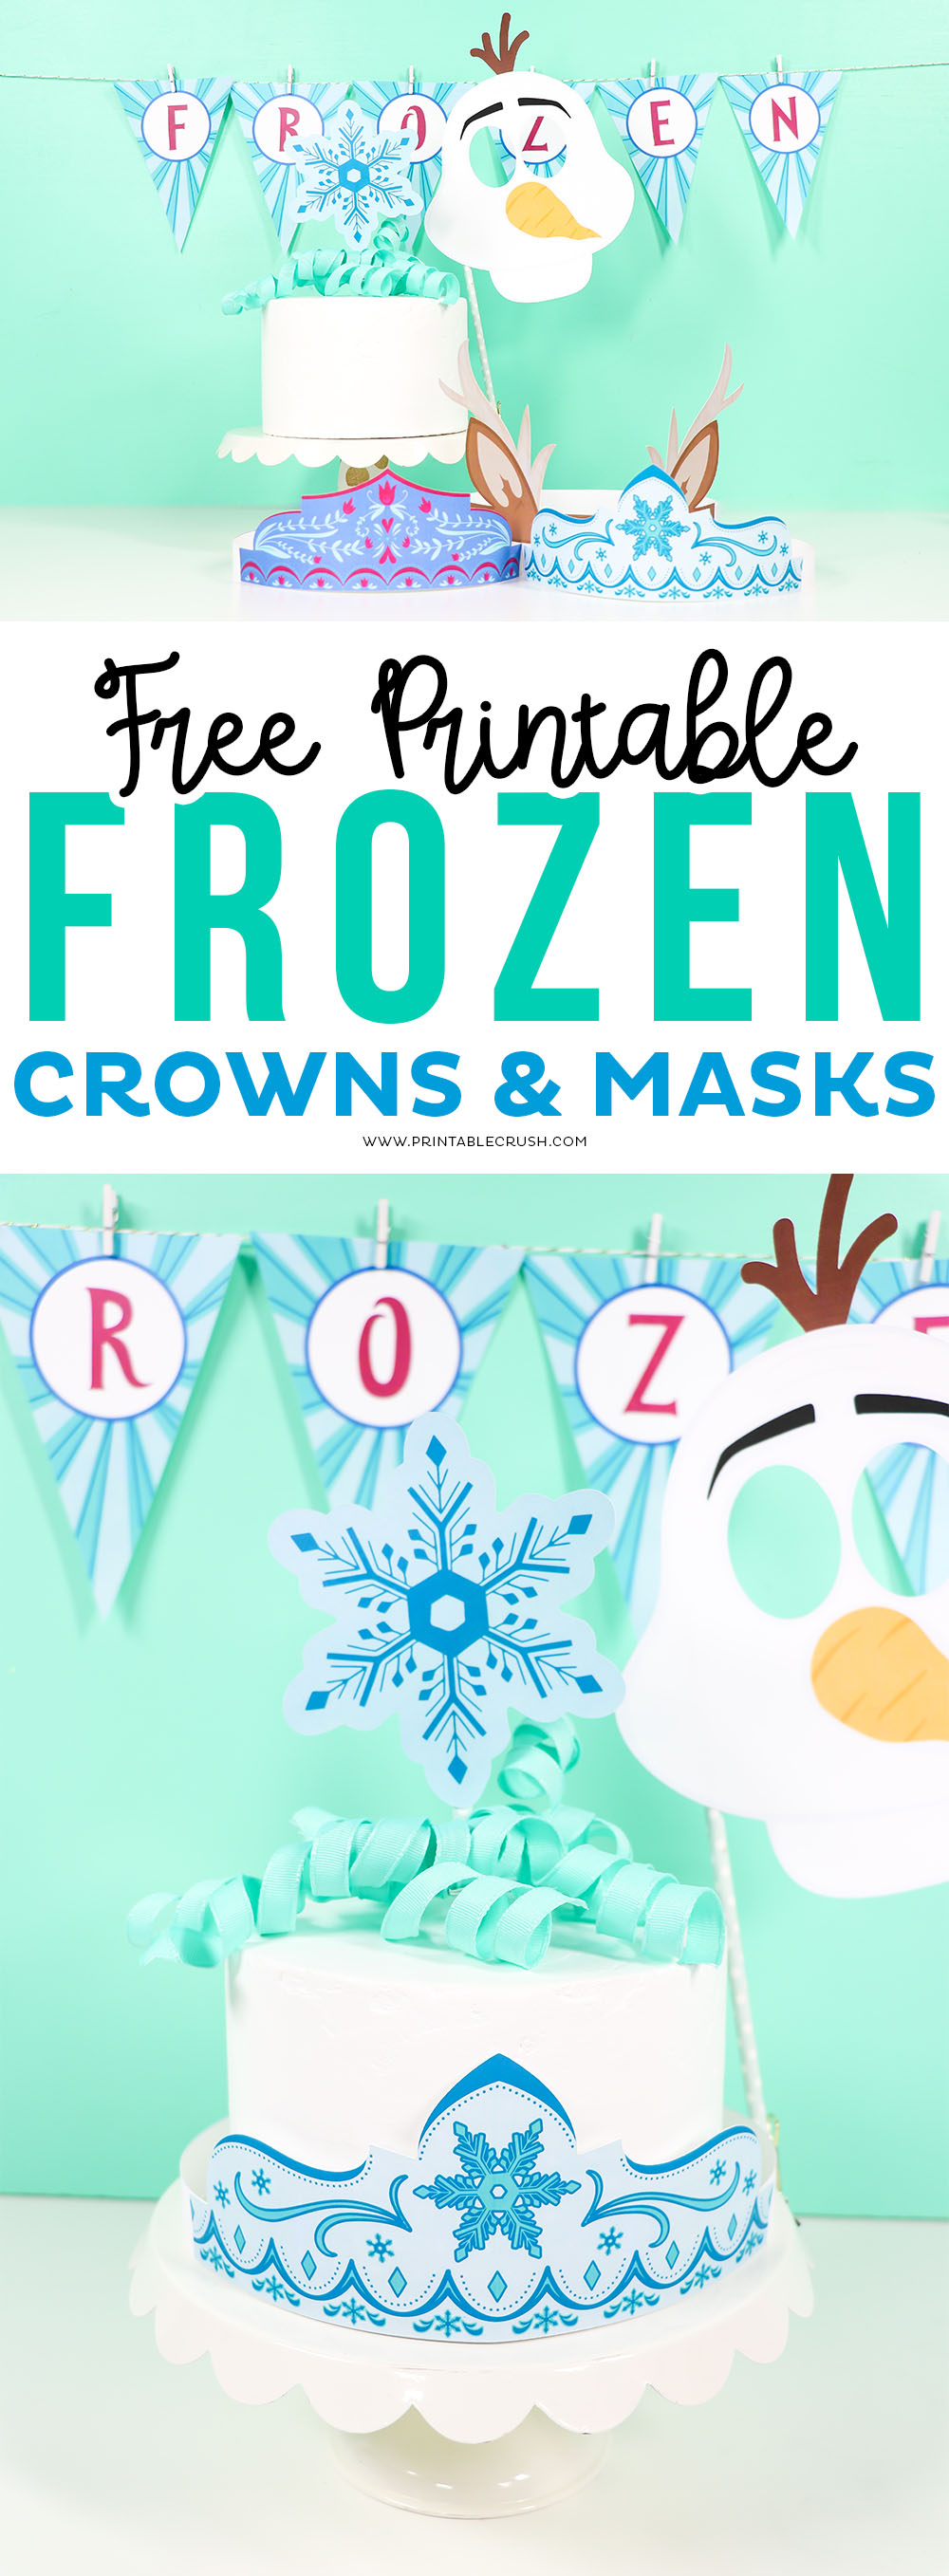 Free Frozen Party Printables - Anna, Esla, and Sven Crowns with Olaf Mask and Snowflake toppers...plus a cute Frozen party banner.